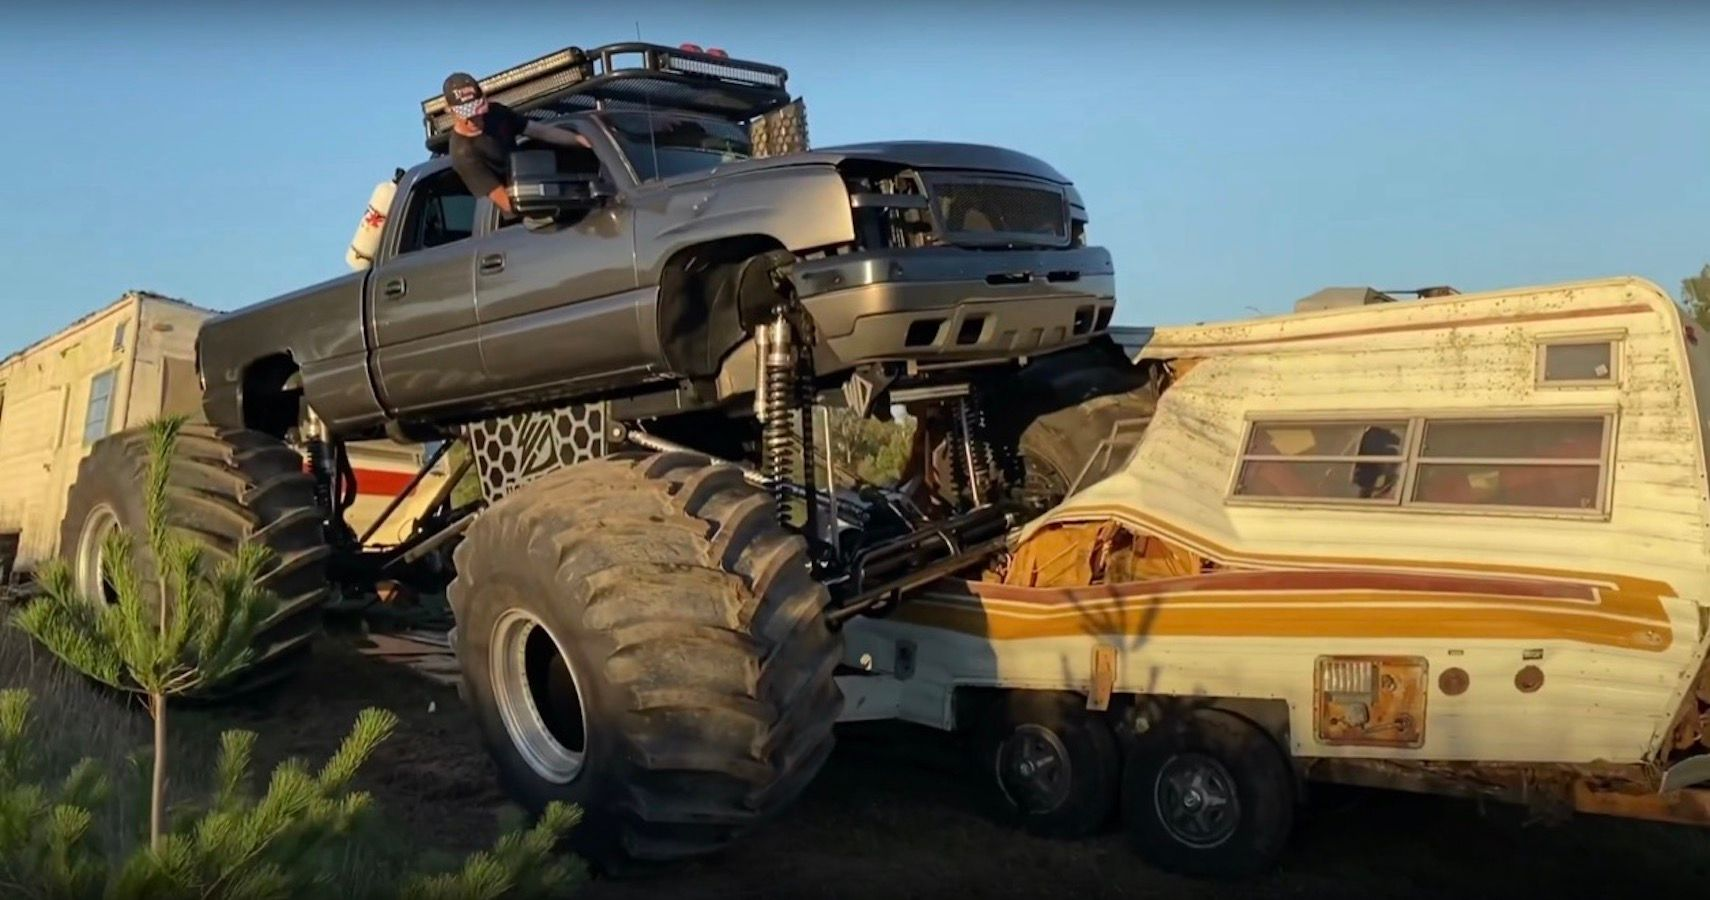 WhistlinDiesel Trashes Gooseneck Trailers To Pieces With His Chevy Silverado MonsterMax